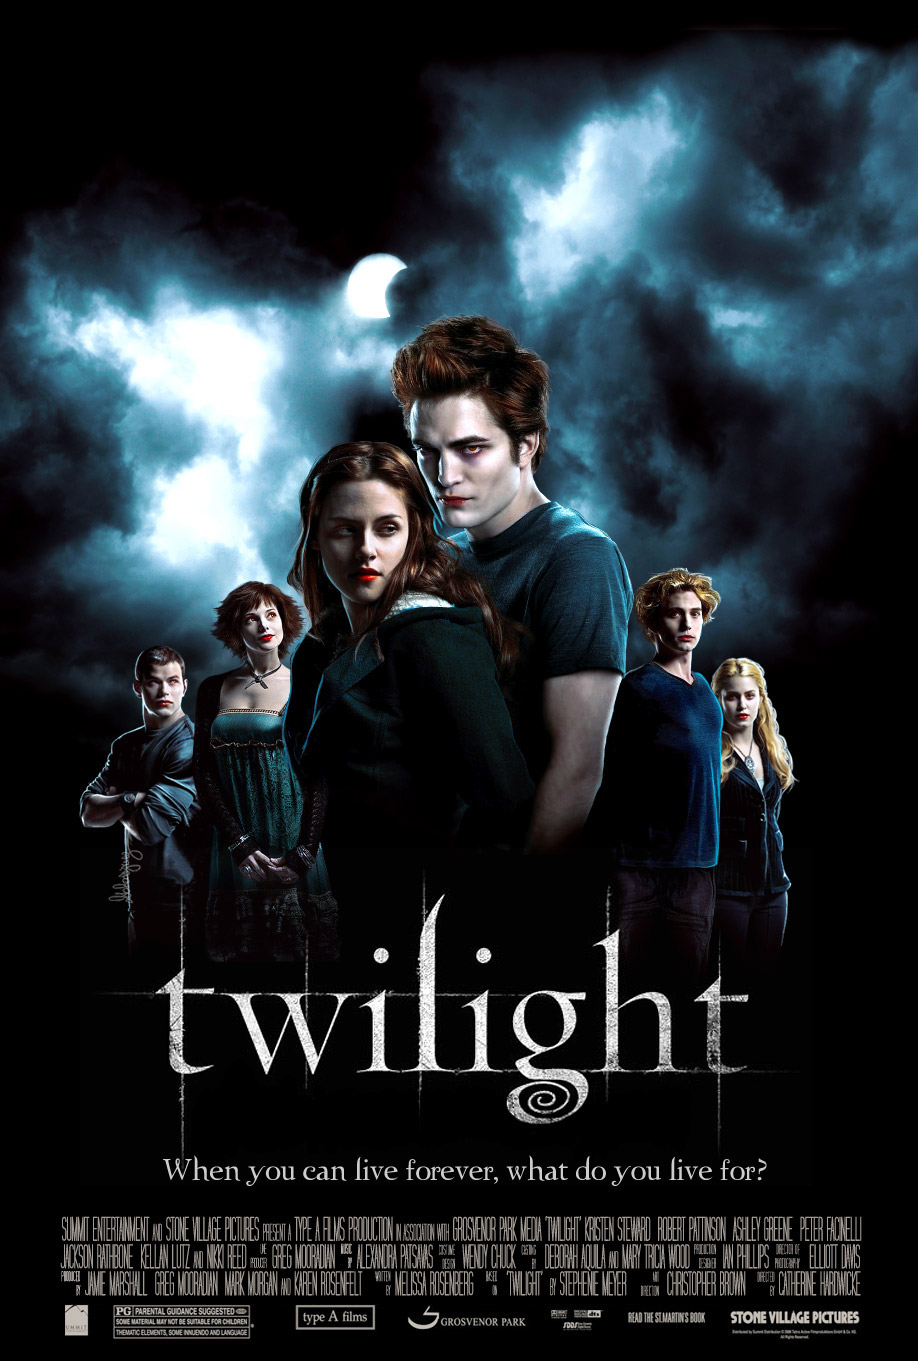 Twilight.  Urgh.